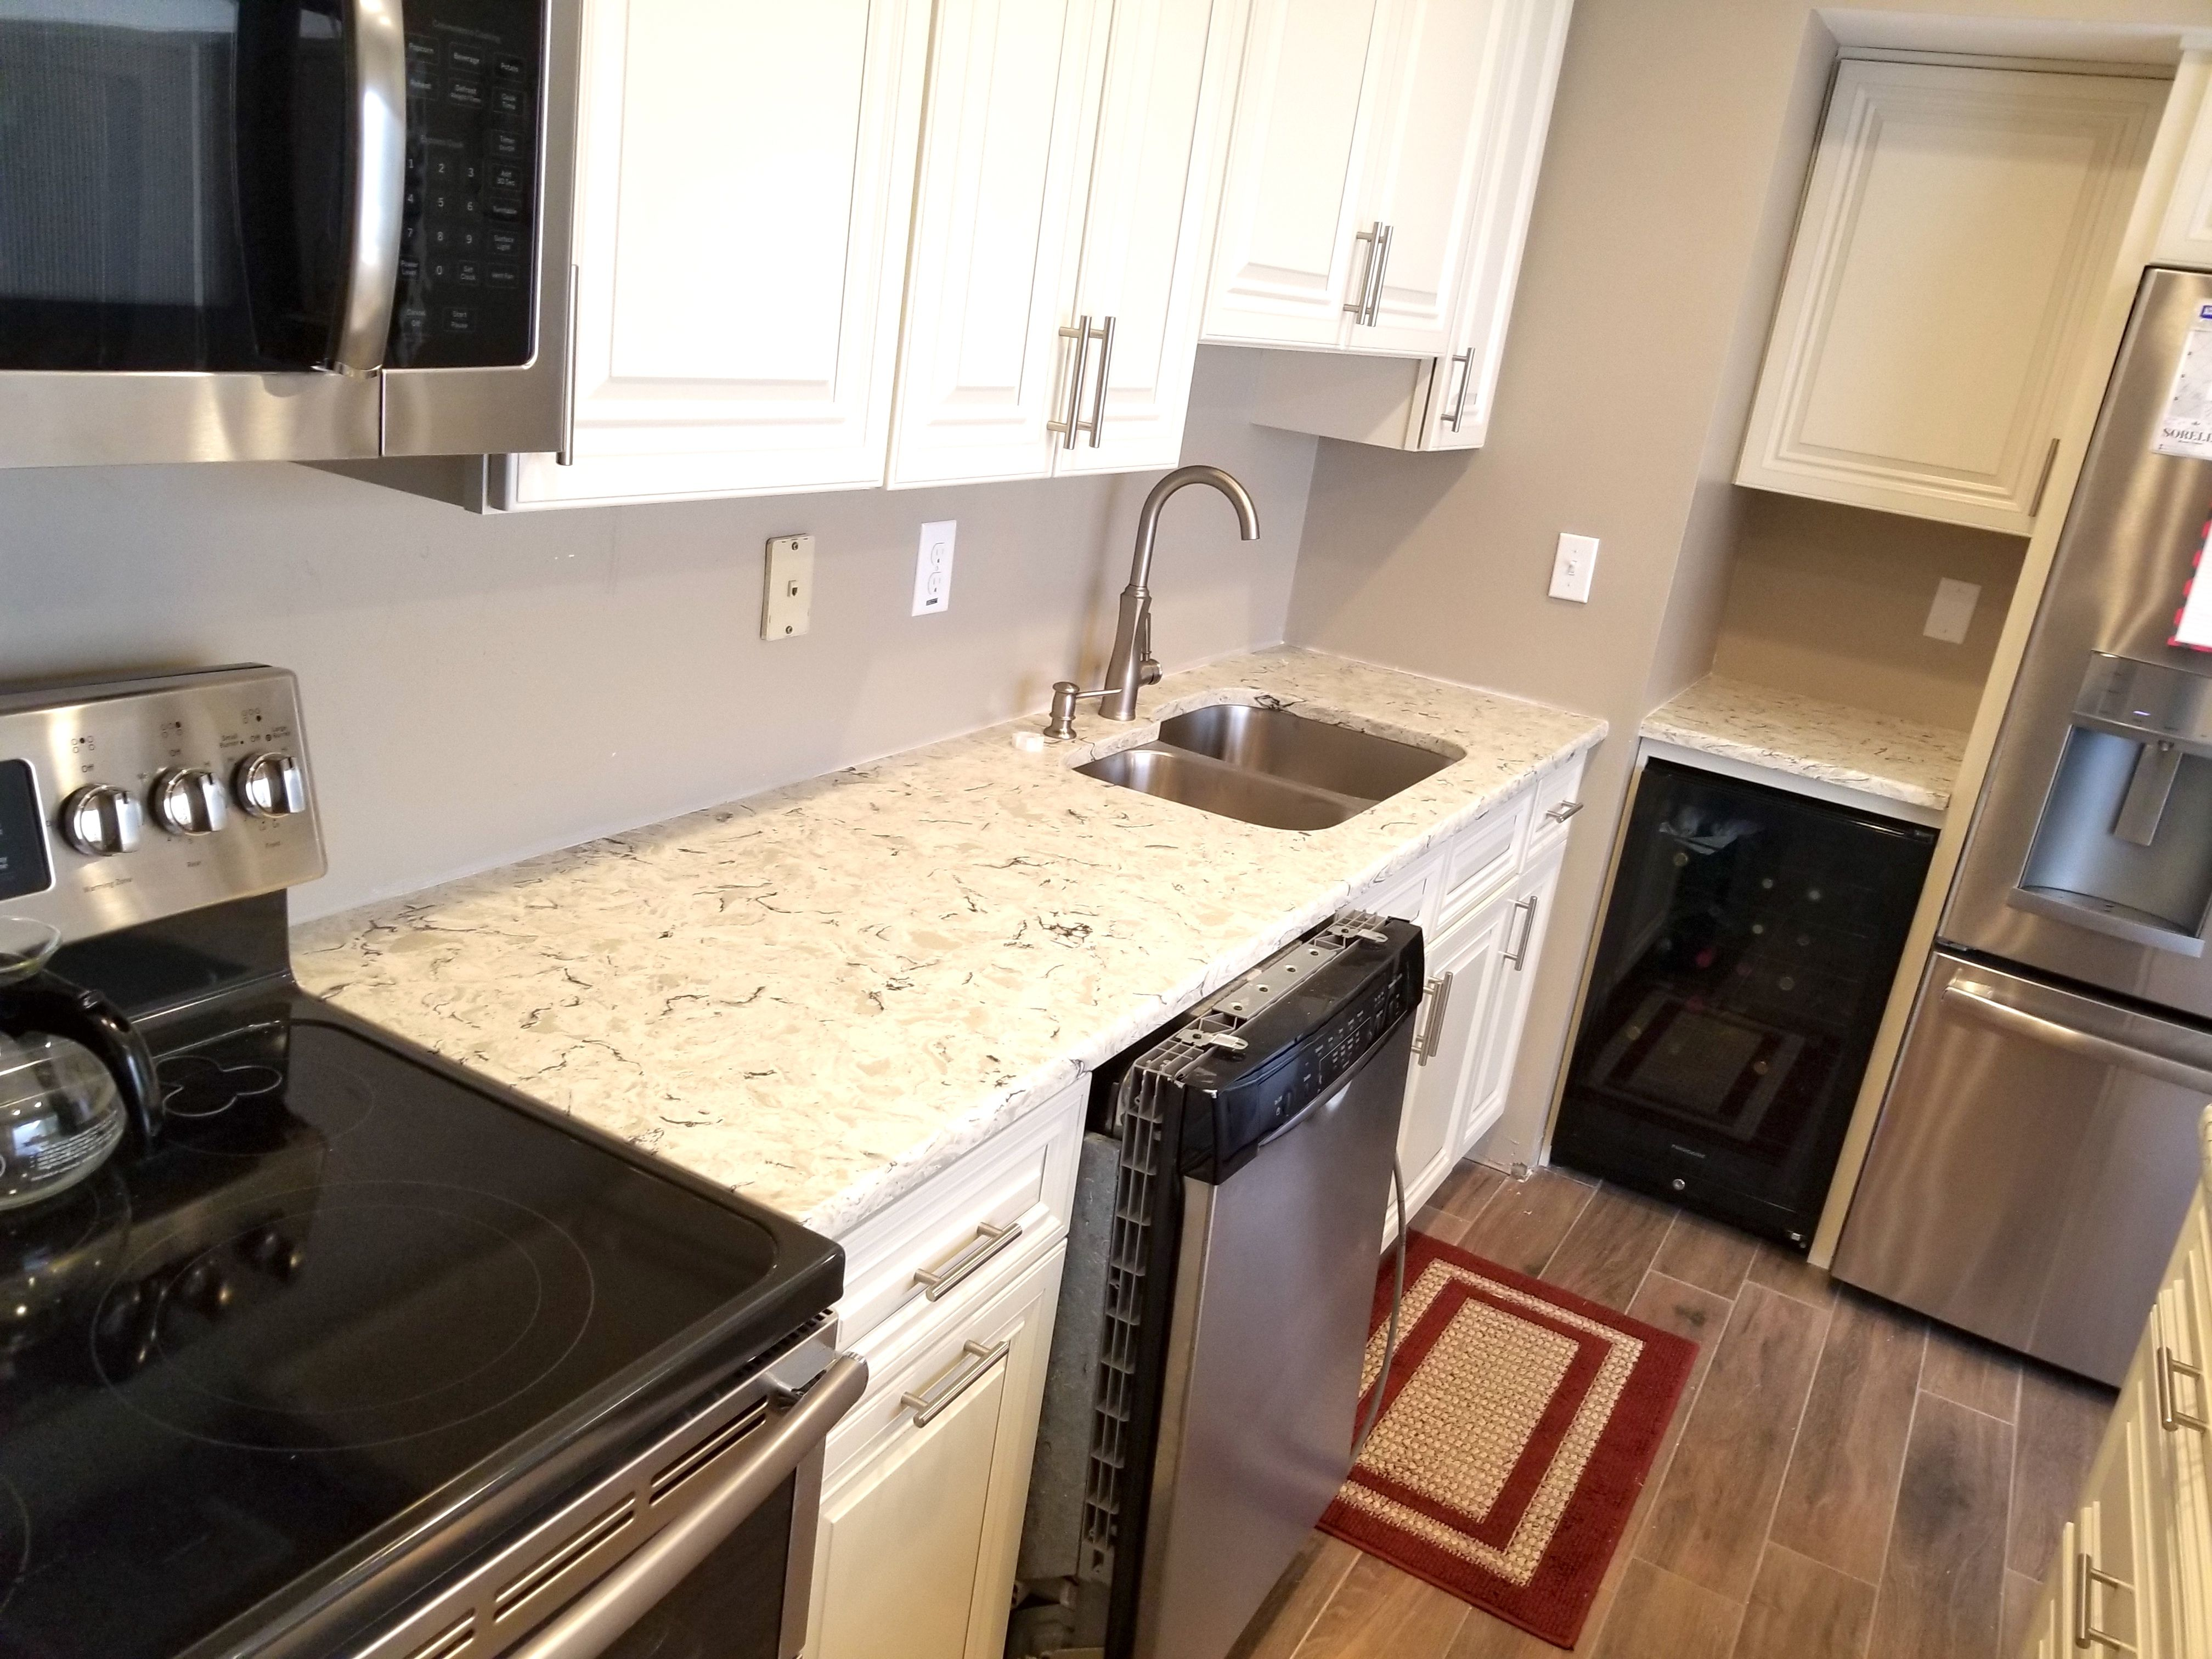 worktop tampa kitchens full grey seattle bathroom kitchen backsplash portland of countertops granite concrete environmentally size surfaces color remnants glass slabs quartz translucent cracked tile images recycled friendly for terrazzo countertop